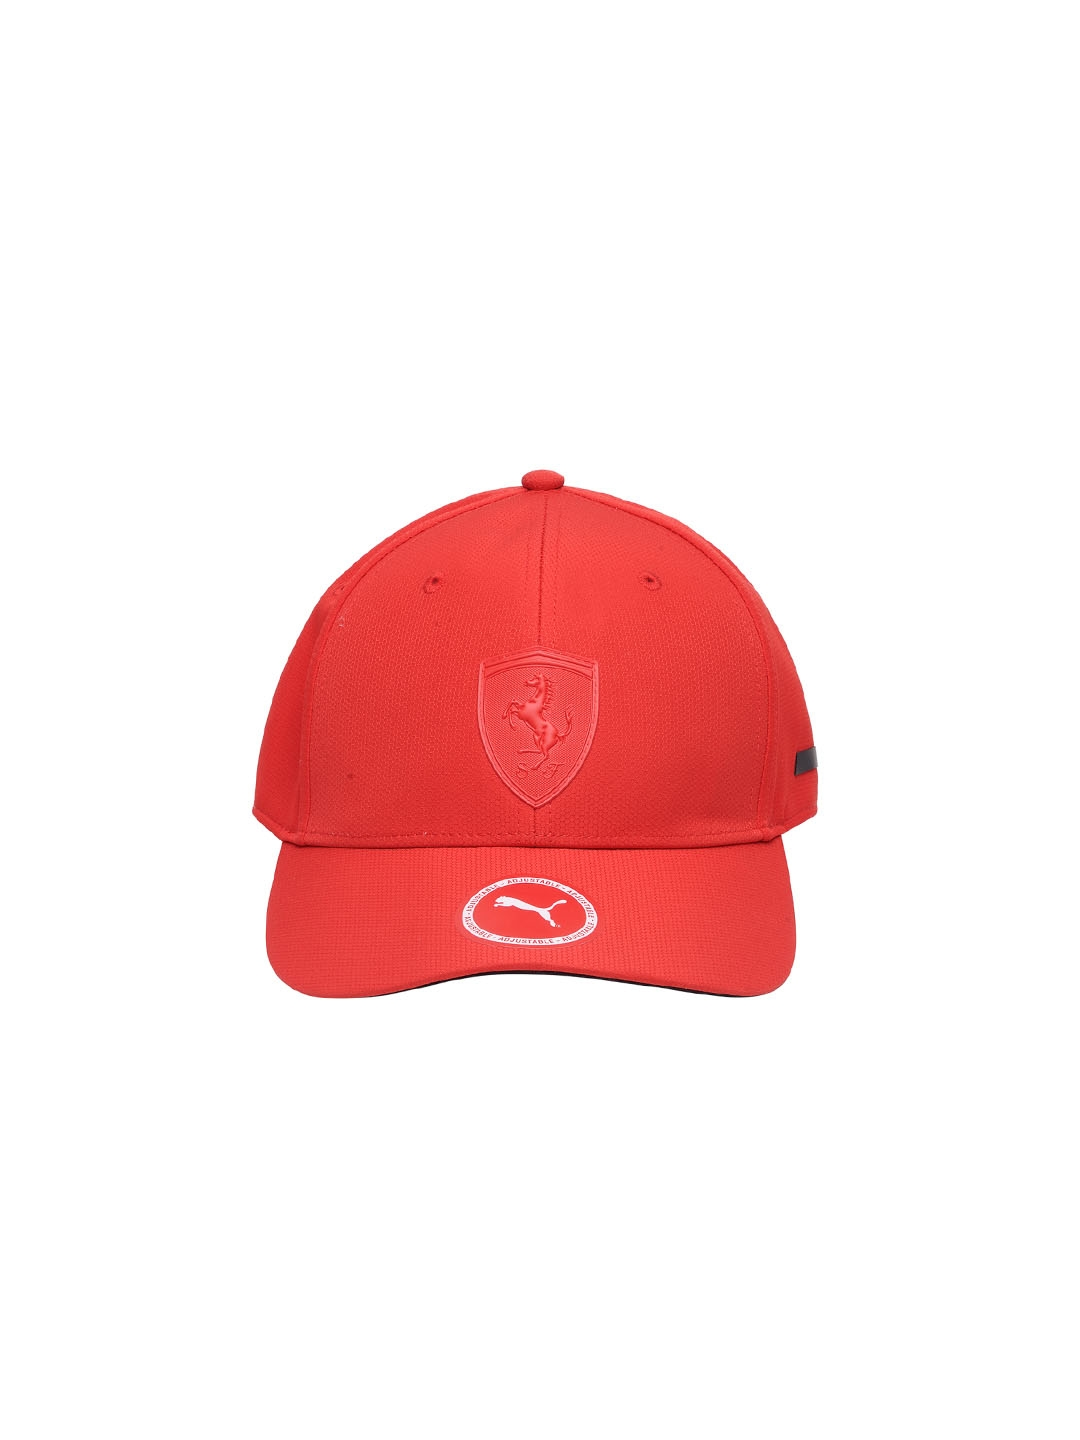 Buy Puma Unisex Red Ferrari LS Baseball Cap - Caps for Unisex ... 77d742572e5